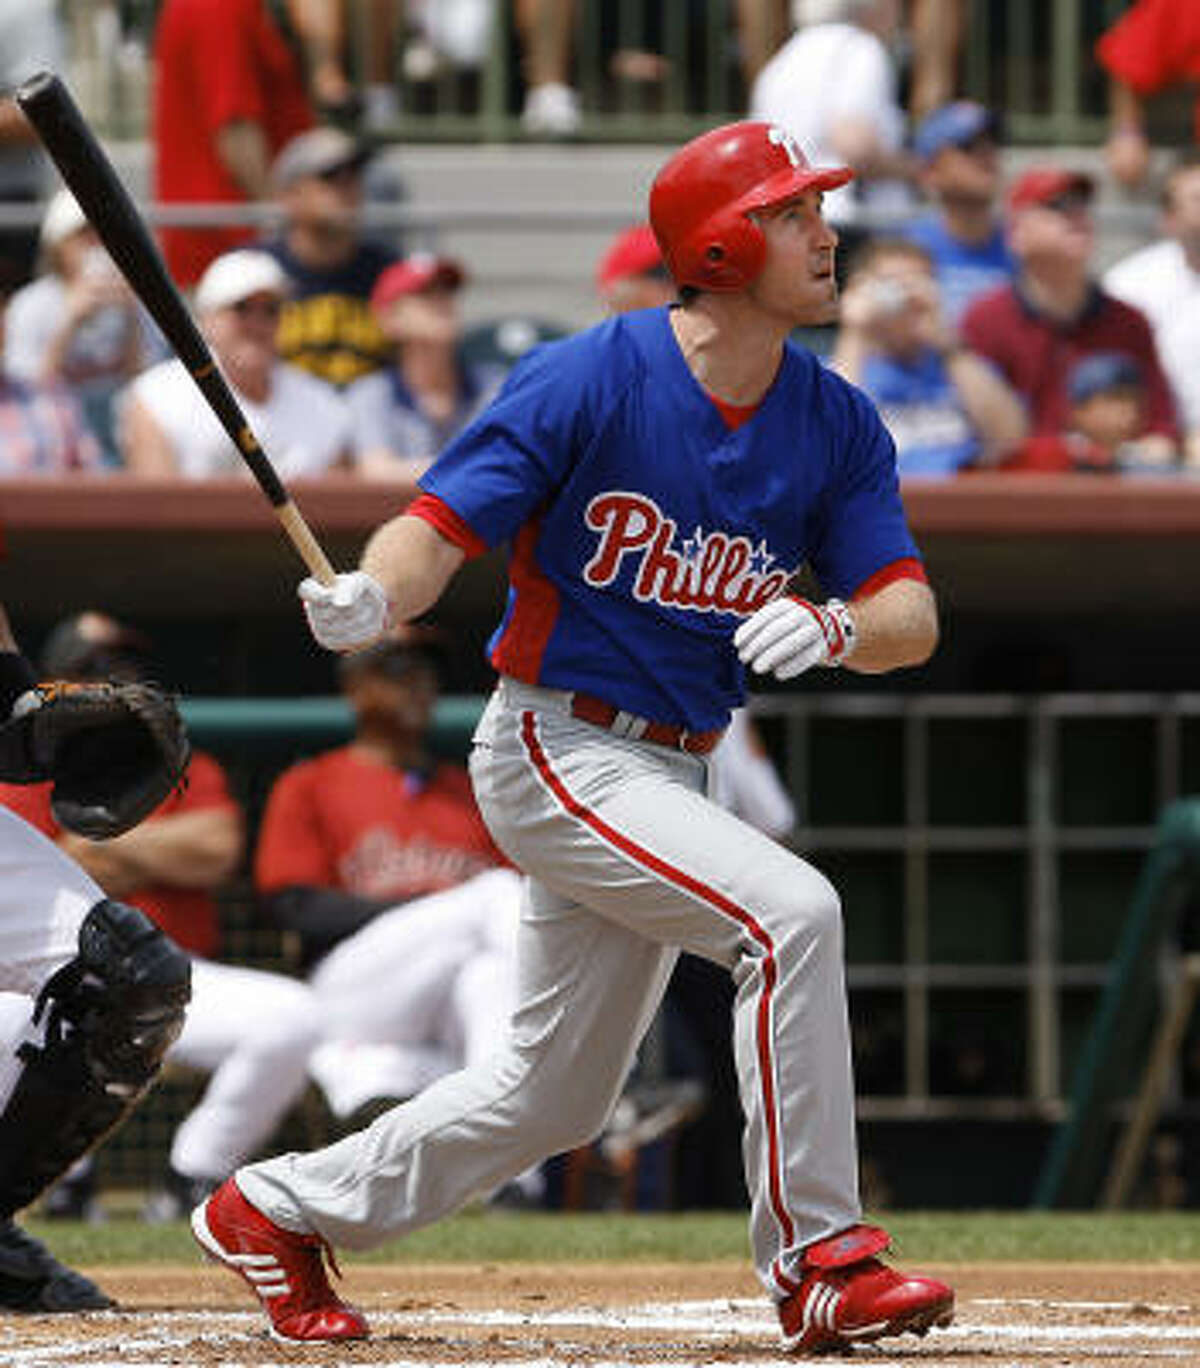 Phillies second baseman Chase Utley watches the ball as he flies out in the first inning.